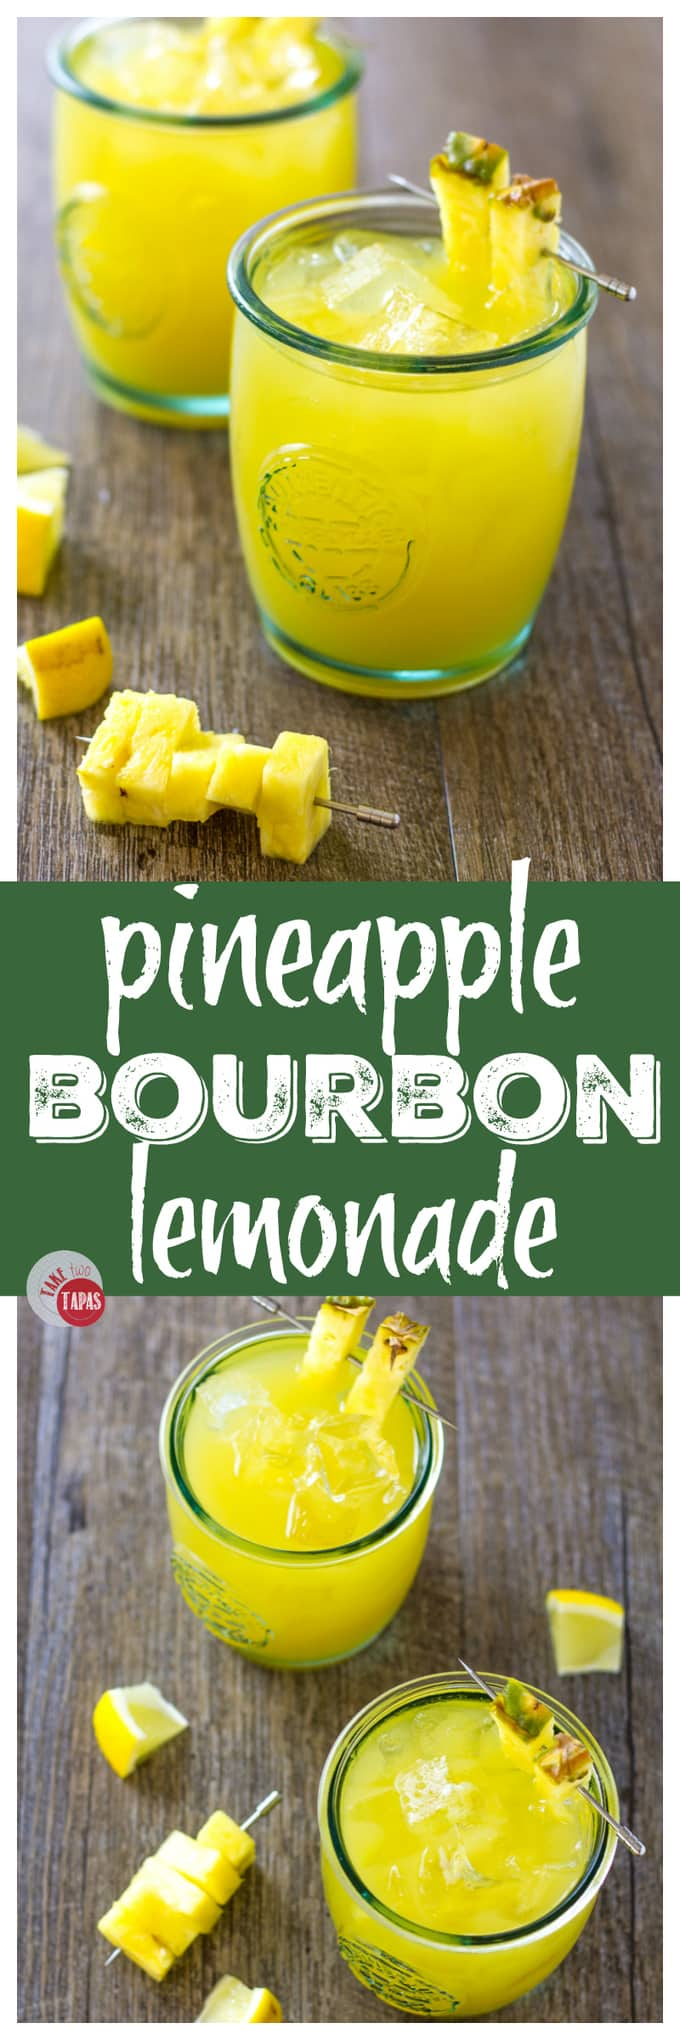 Pineapple Bourbon Lemonade Pinterest Long Collage